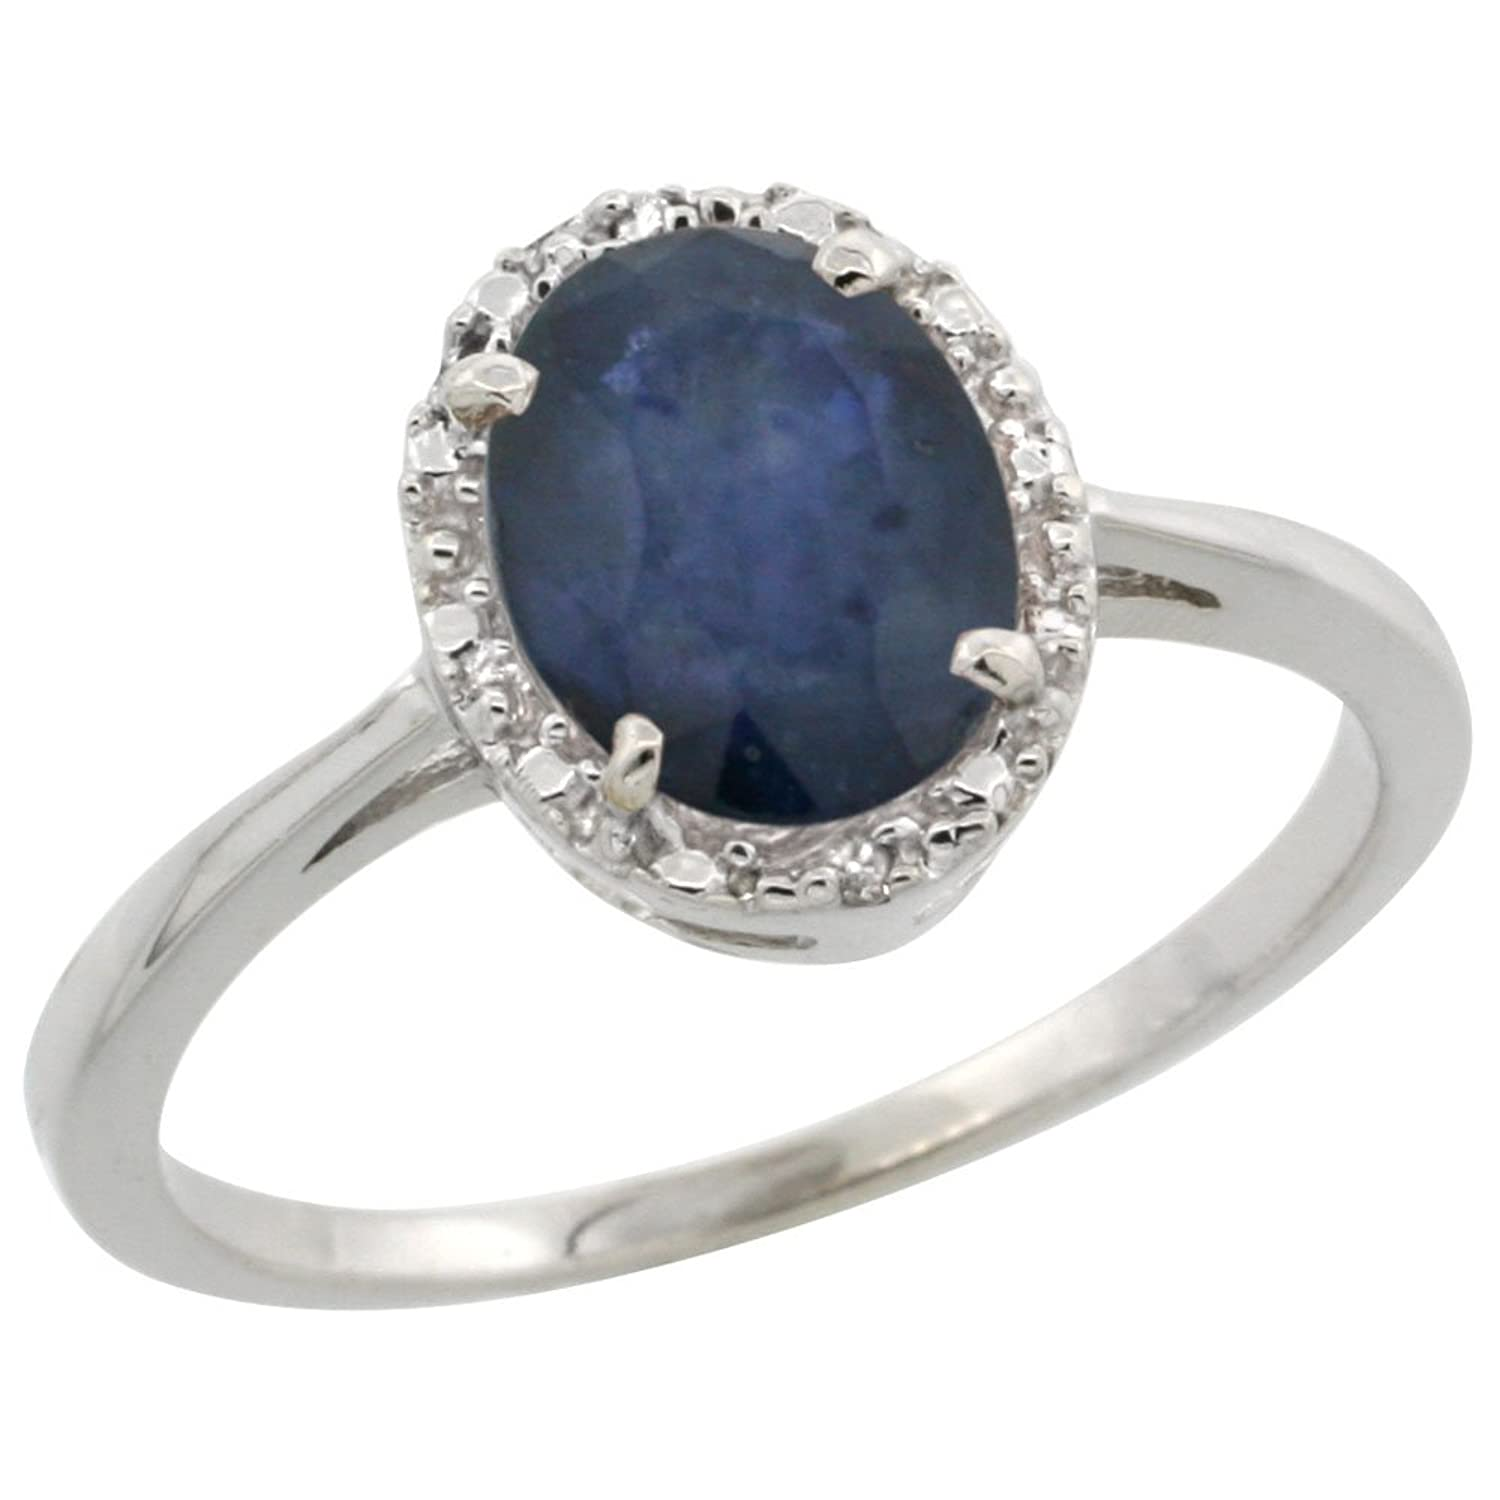 14K White Gold Natural Blue Sapphire Ring Oval 8×6 mm Diamond Halo, sizes 5-10